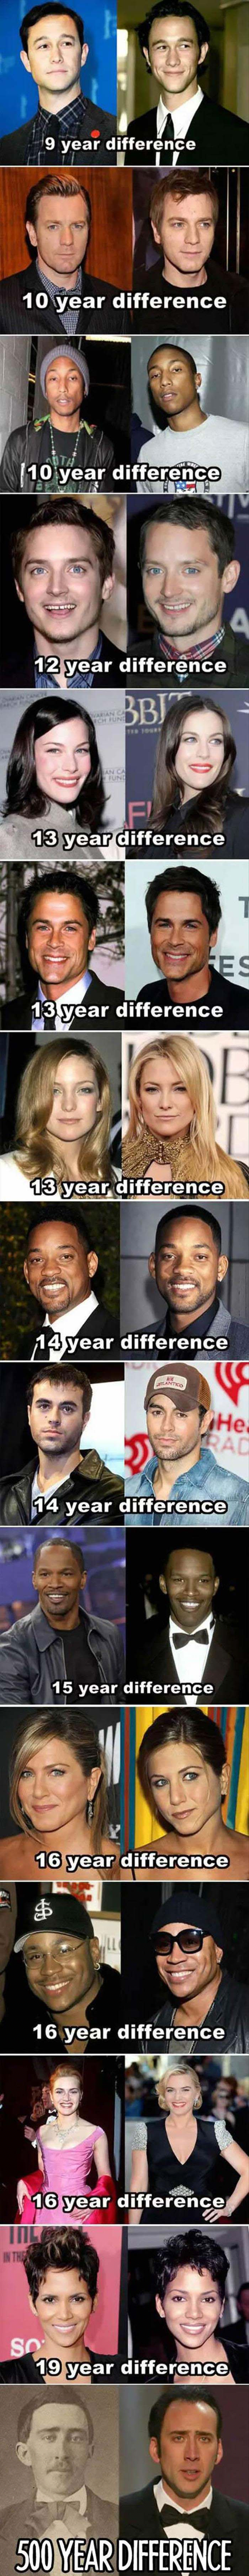 celebrities don't age, celebrities who don't age, celebrities that don't age, immortal celebrities, celebrities immortal, celebrities that never age,